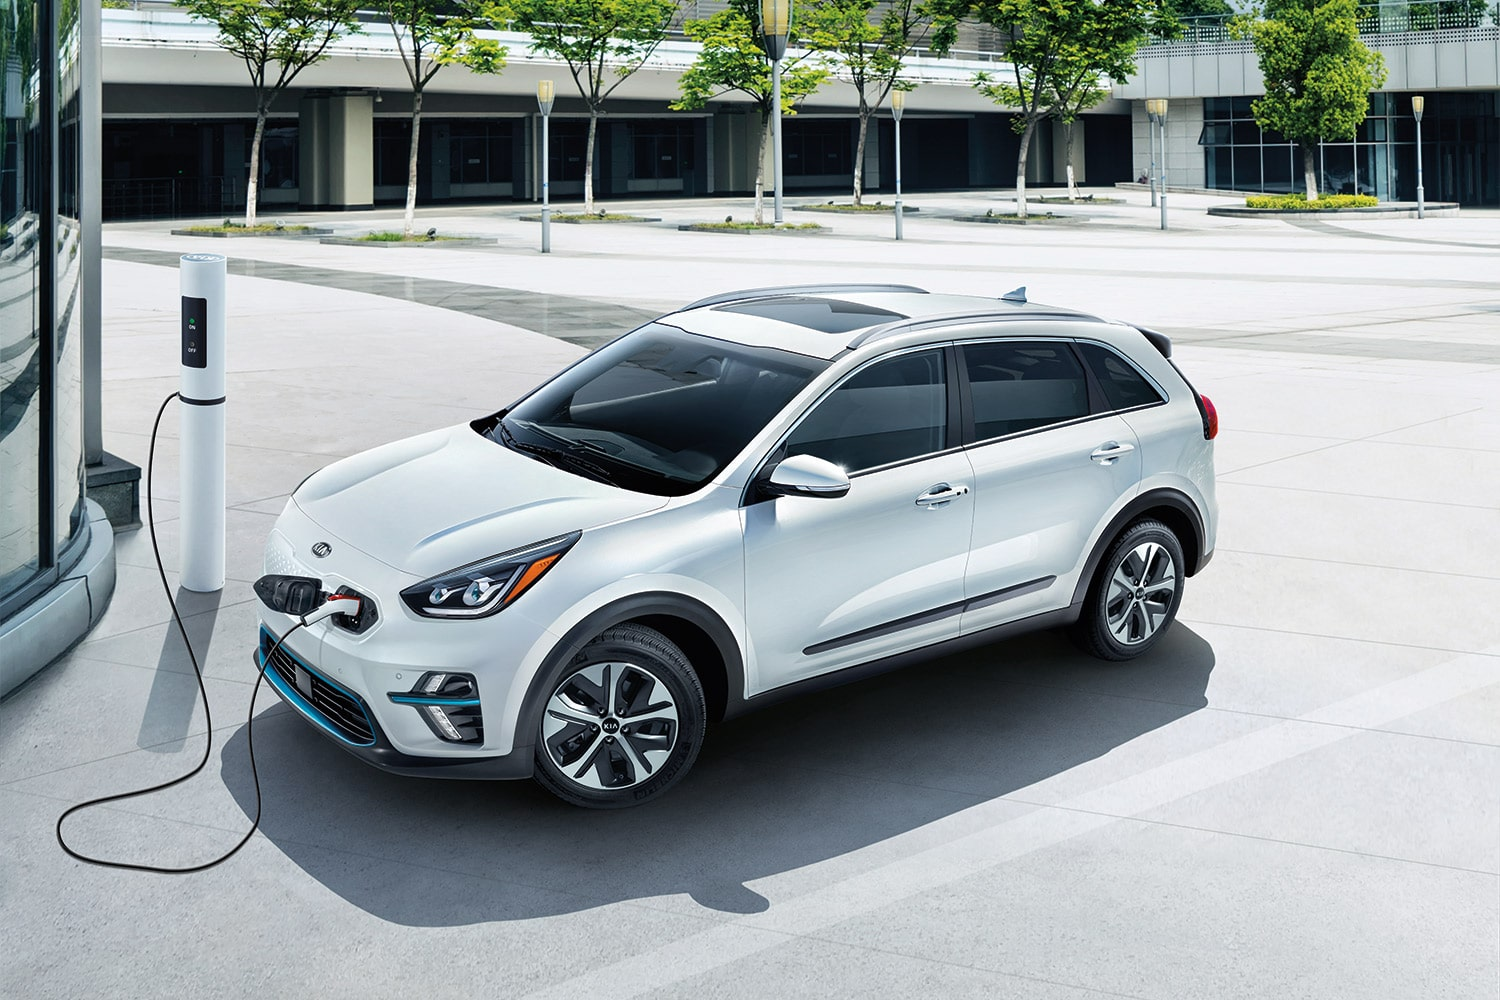 2019 Kia Niro EV IZEV Program